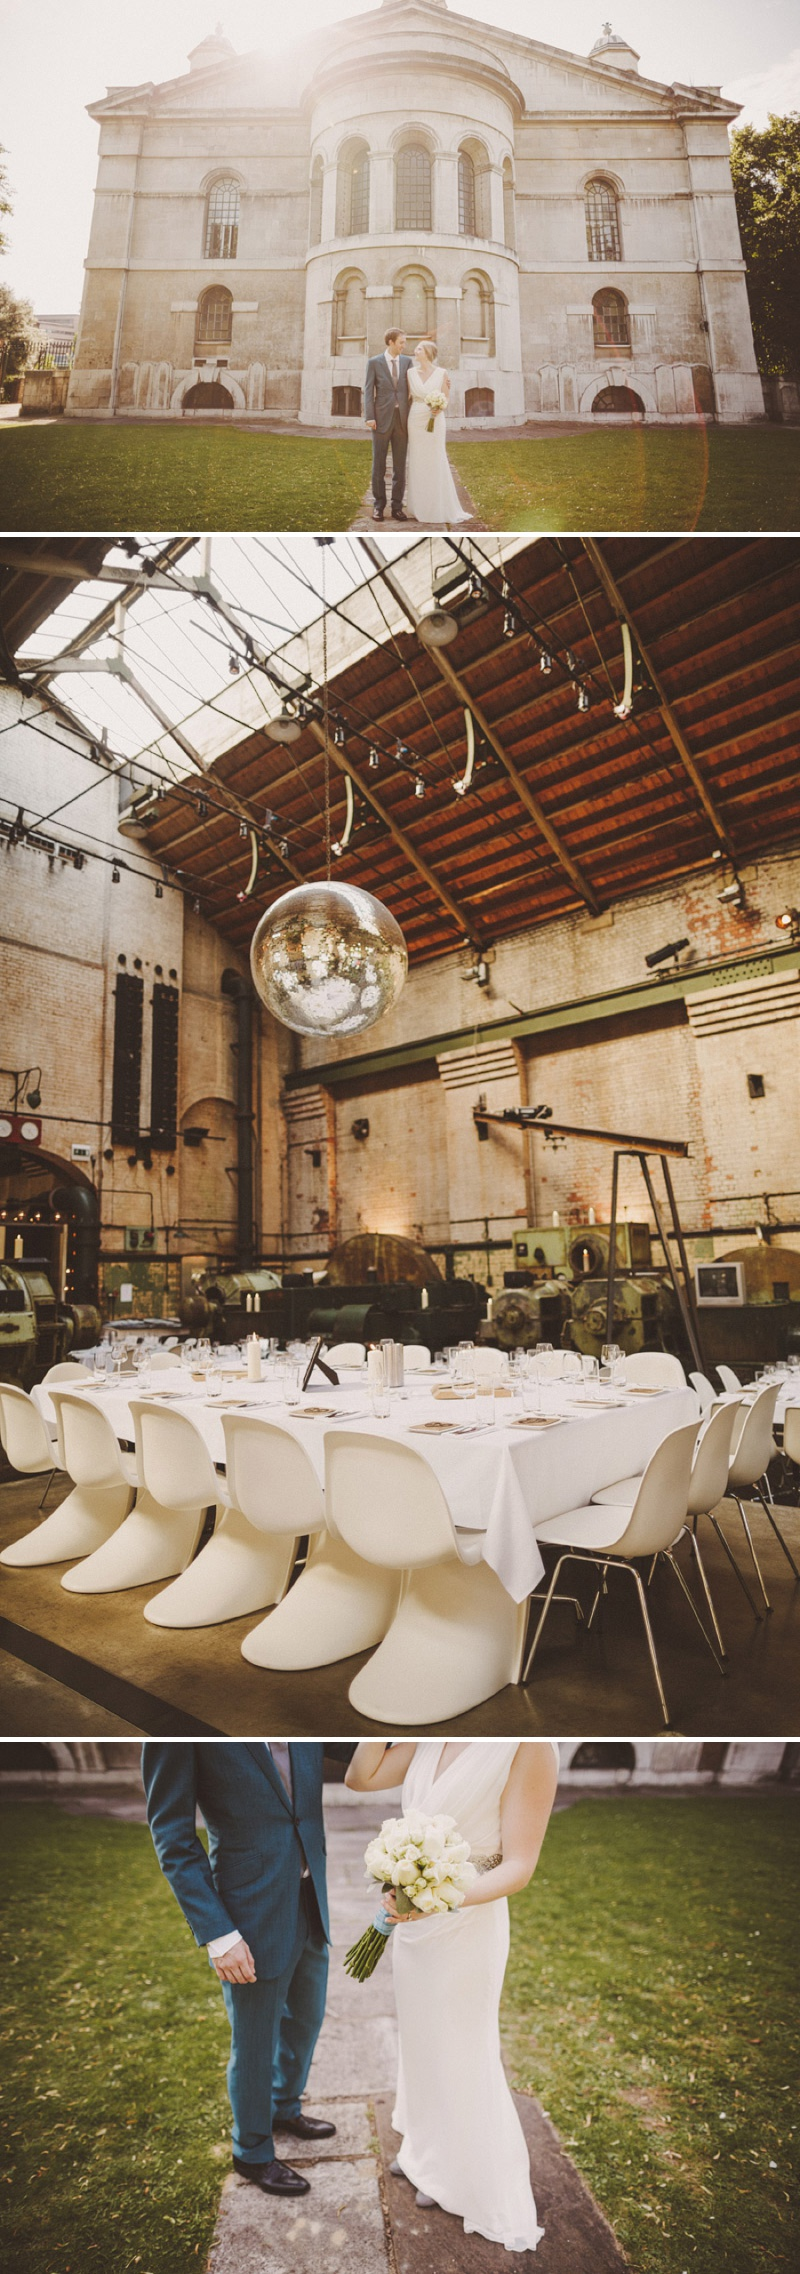 A hip city wedding held at an power station art gallery in East London with a Cymbeline 1930s inspired dress and a white rose bouquet with photography by Ed Peers._0008